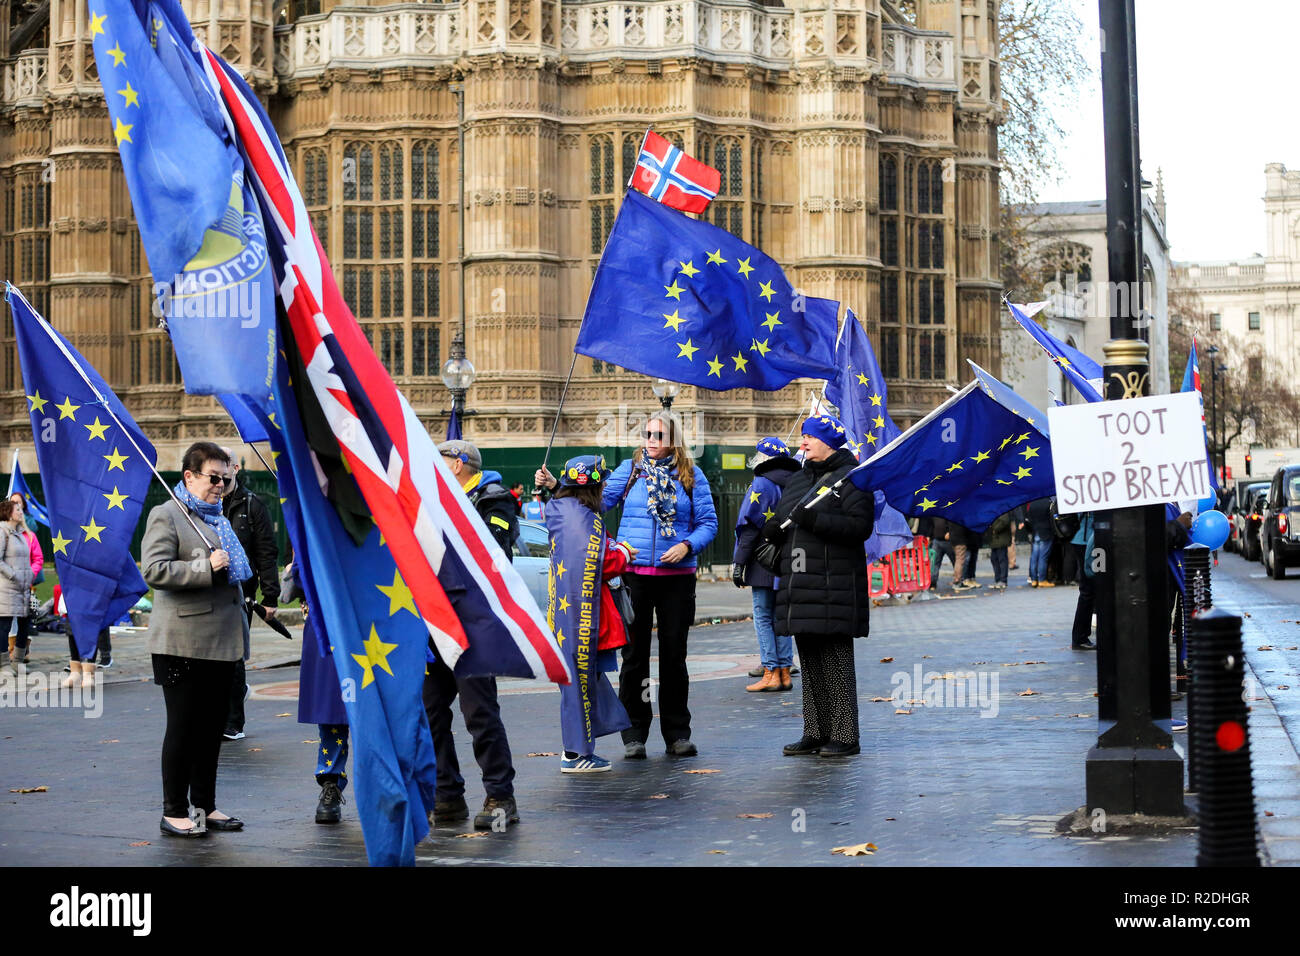 London, UK. 19th Nov, 2018. Pro-EU protesters are seen holding flags during the protest.Pro-EU protesters from SODEM (Stand in Defiance European Movement) including a large dinosaur demonstrates with their placards and European Union flags outside the Palace of Westminster in central London ahead of the crucial week of Brexit negotiations as Prime Minister Theresa May prepares to meet Chief negotiator Michel Barnier later this week to discuss the withdrawal deal. Credit: Dinendra Haria/SOPA Images/ZUMA Wire/Alamy Live News - Stock Image